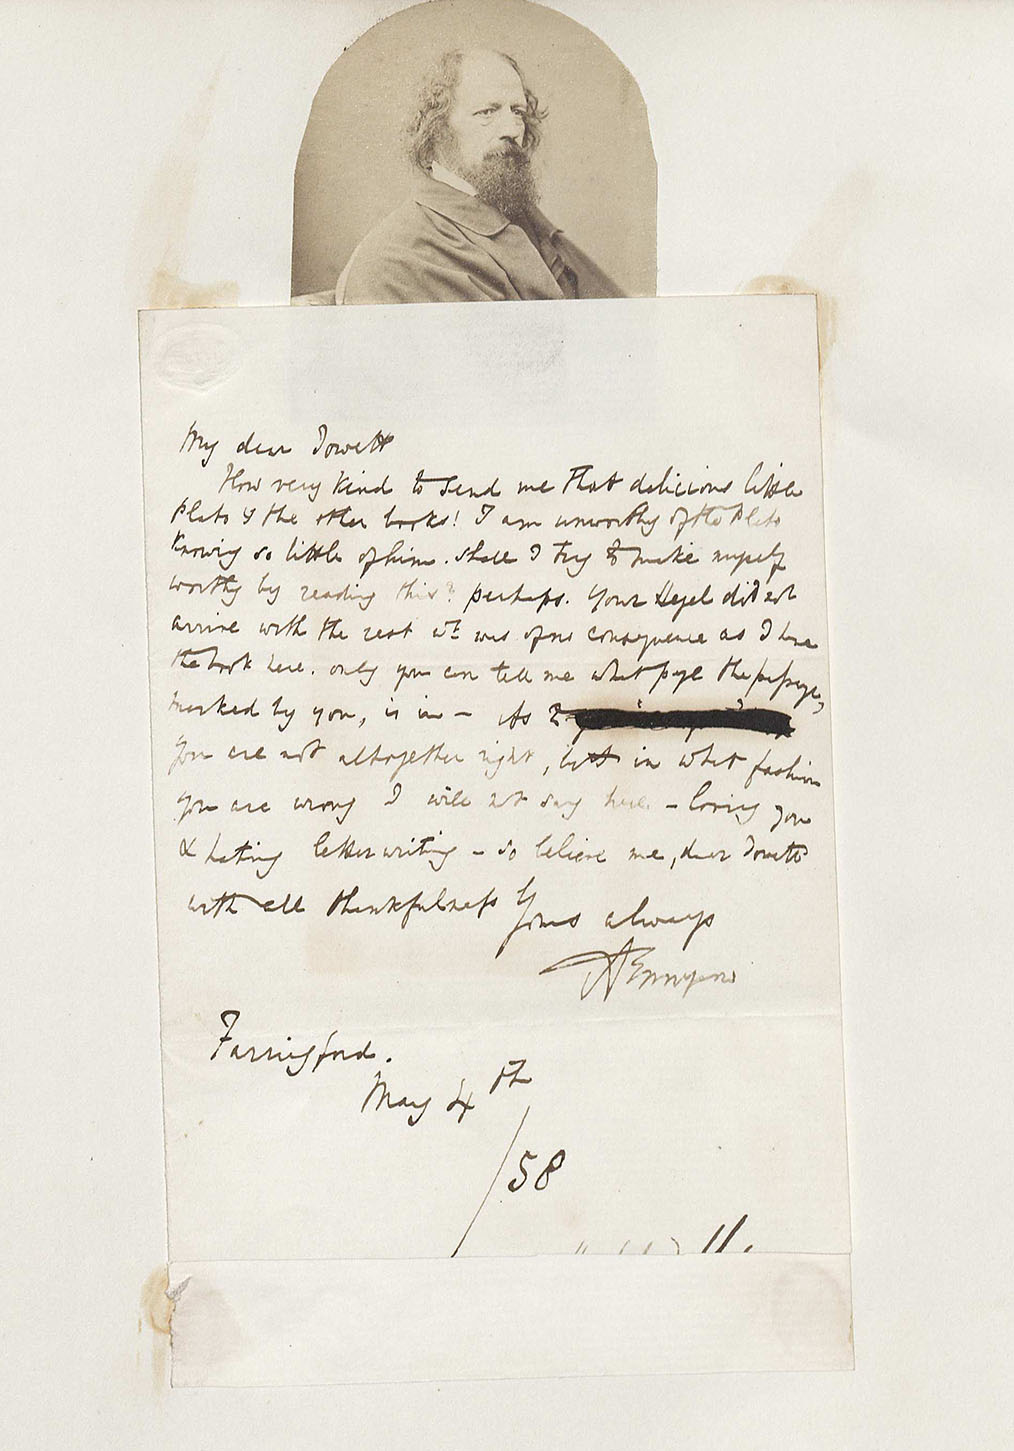 "Baron Alfred Tennyson, Letter to Benjamin Jowett, May 4, 1858 (MSS 10499) This is a handwritten letter from Alfred Tennyson to Benjamin Jowett, featuring a picture of Tennyson. In this letter, Tennyson praises the works of Plato and thanks his correspondence, Jowett, for the copies and recommendation of the books. In Tennyson's opinion, he is ""unworthy"" of reading Plato's pieces, but asks Jowett for page numbers as references to key points, and possible favorite sections of the books."